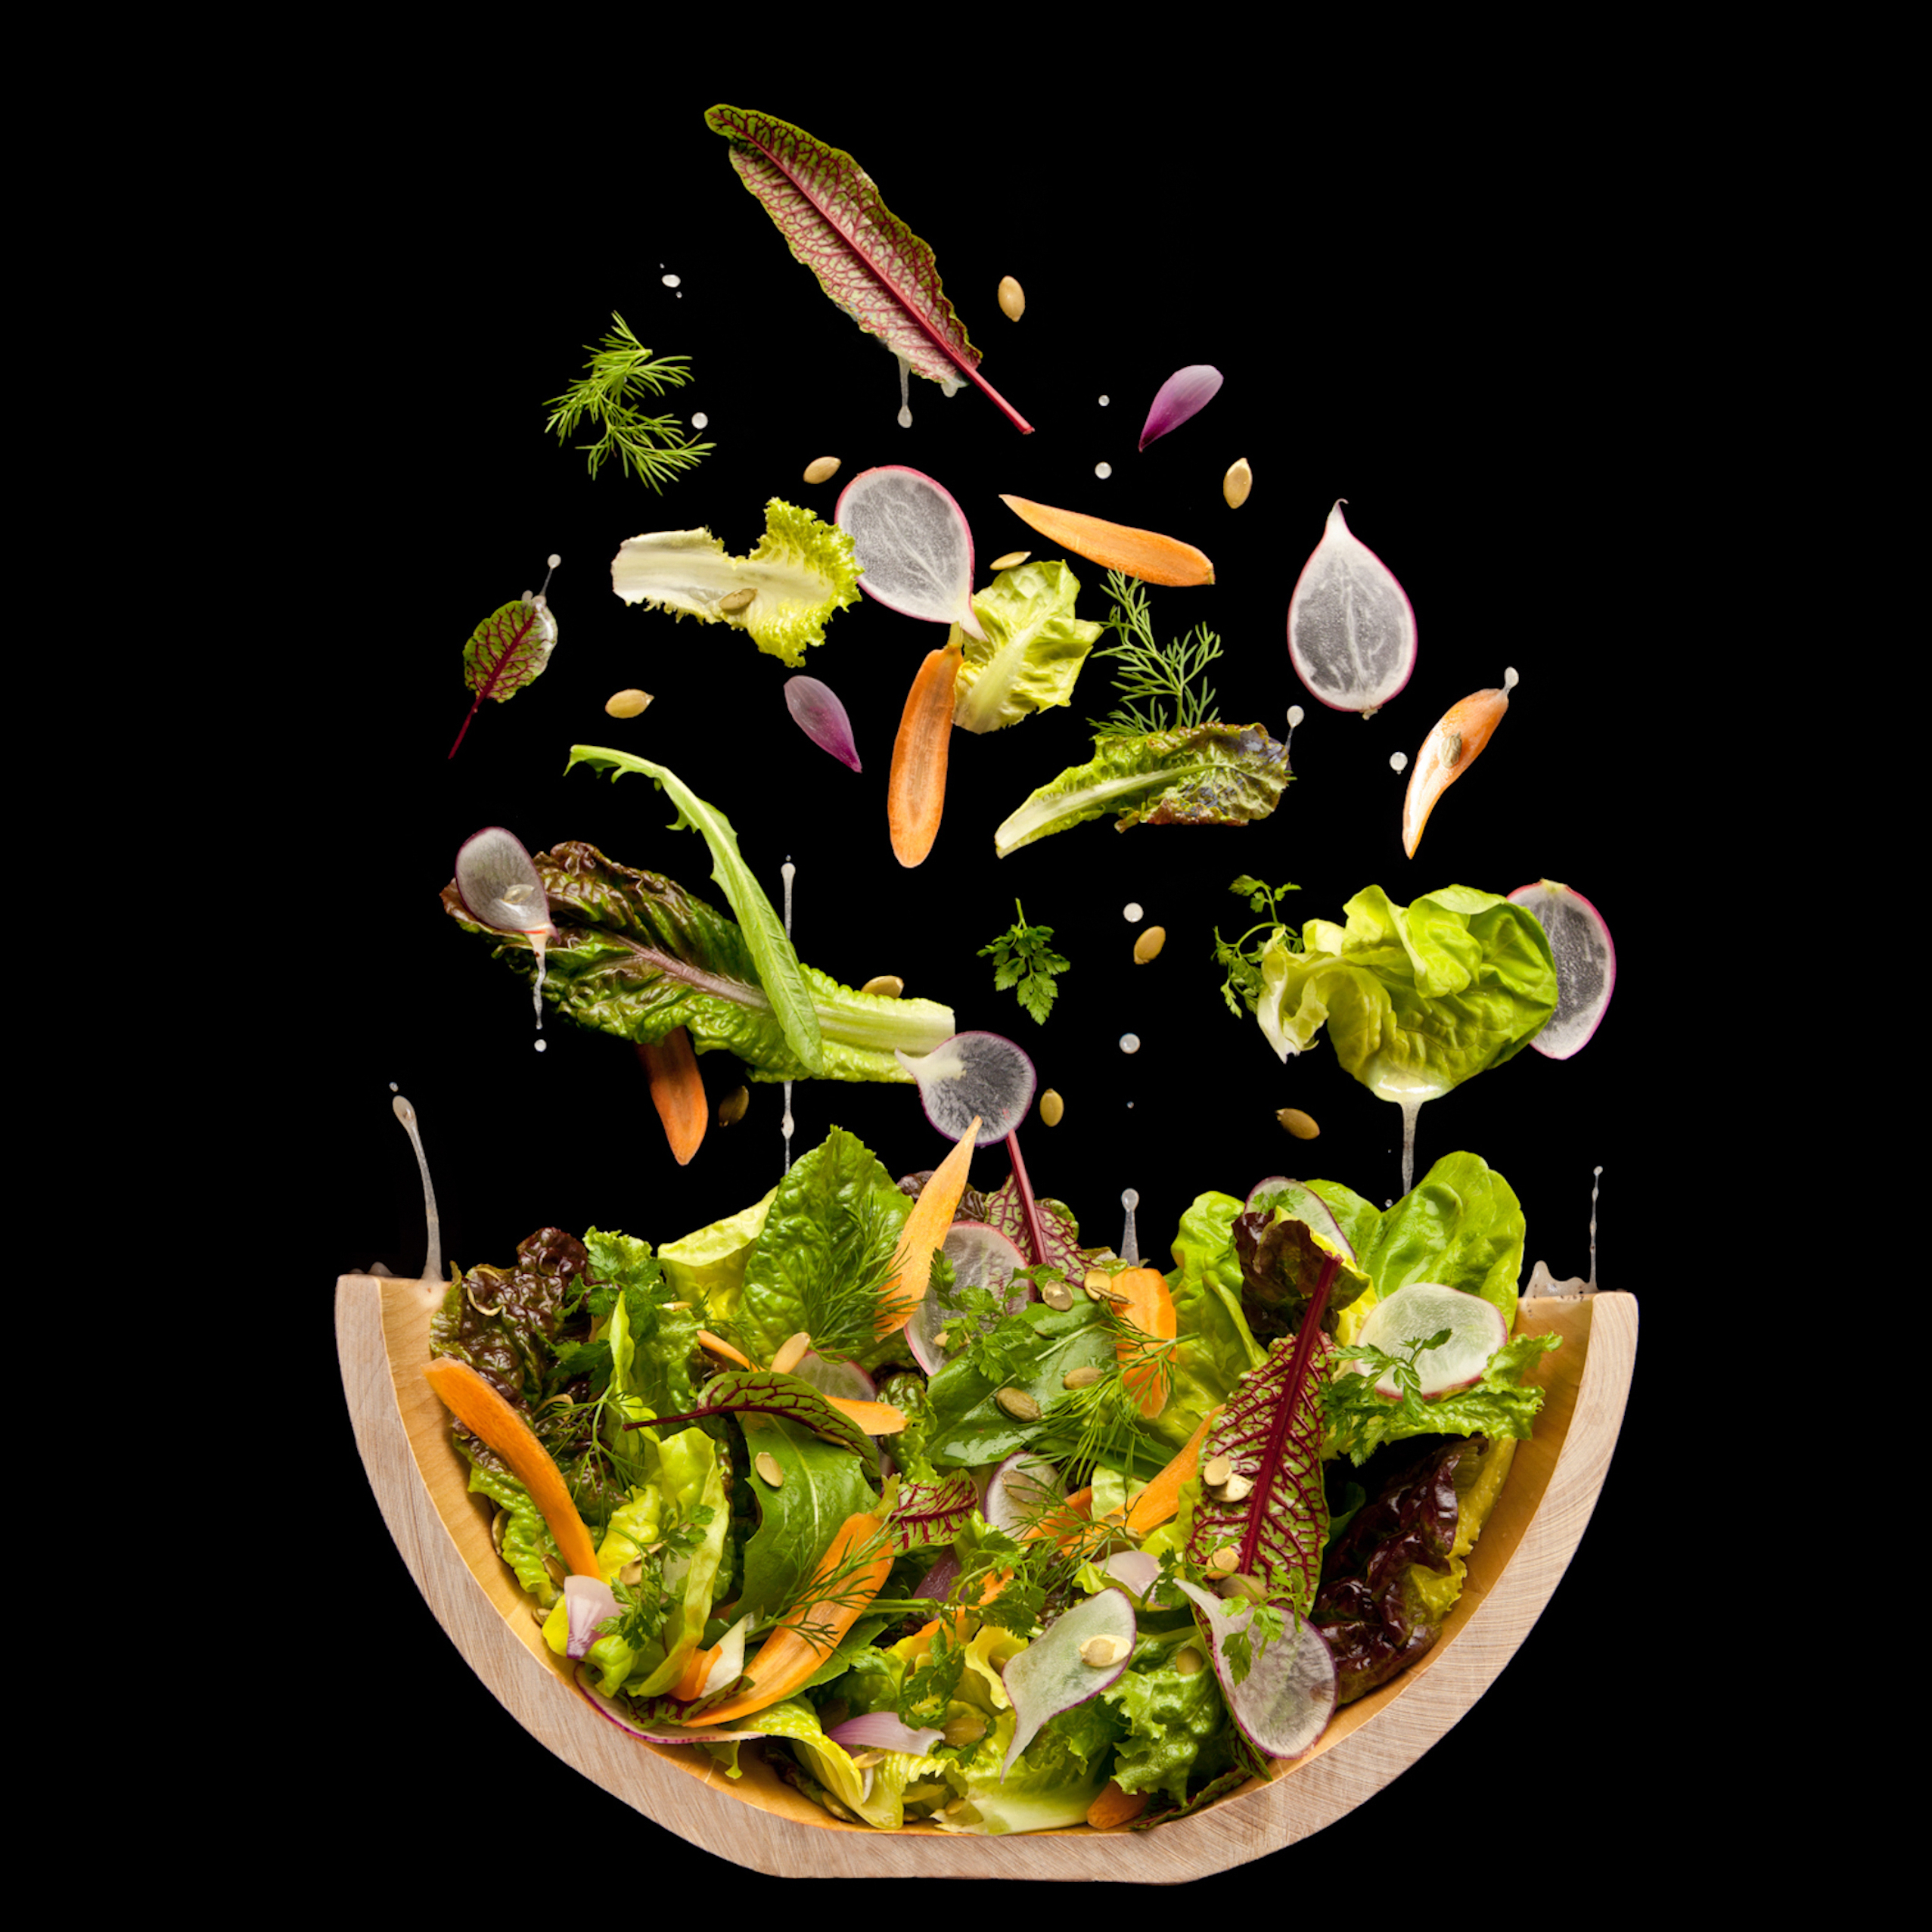 Caught in a toss: This image is actually dozens of photographs stitched together to recreate the moment when a salad mixes with its dressing.